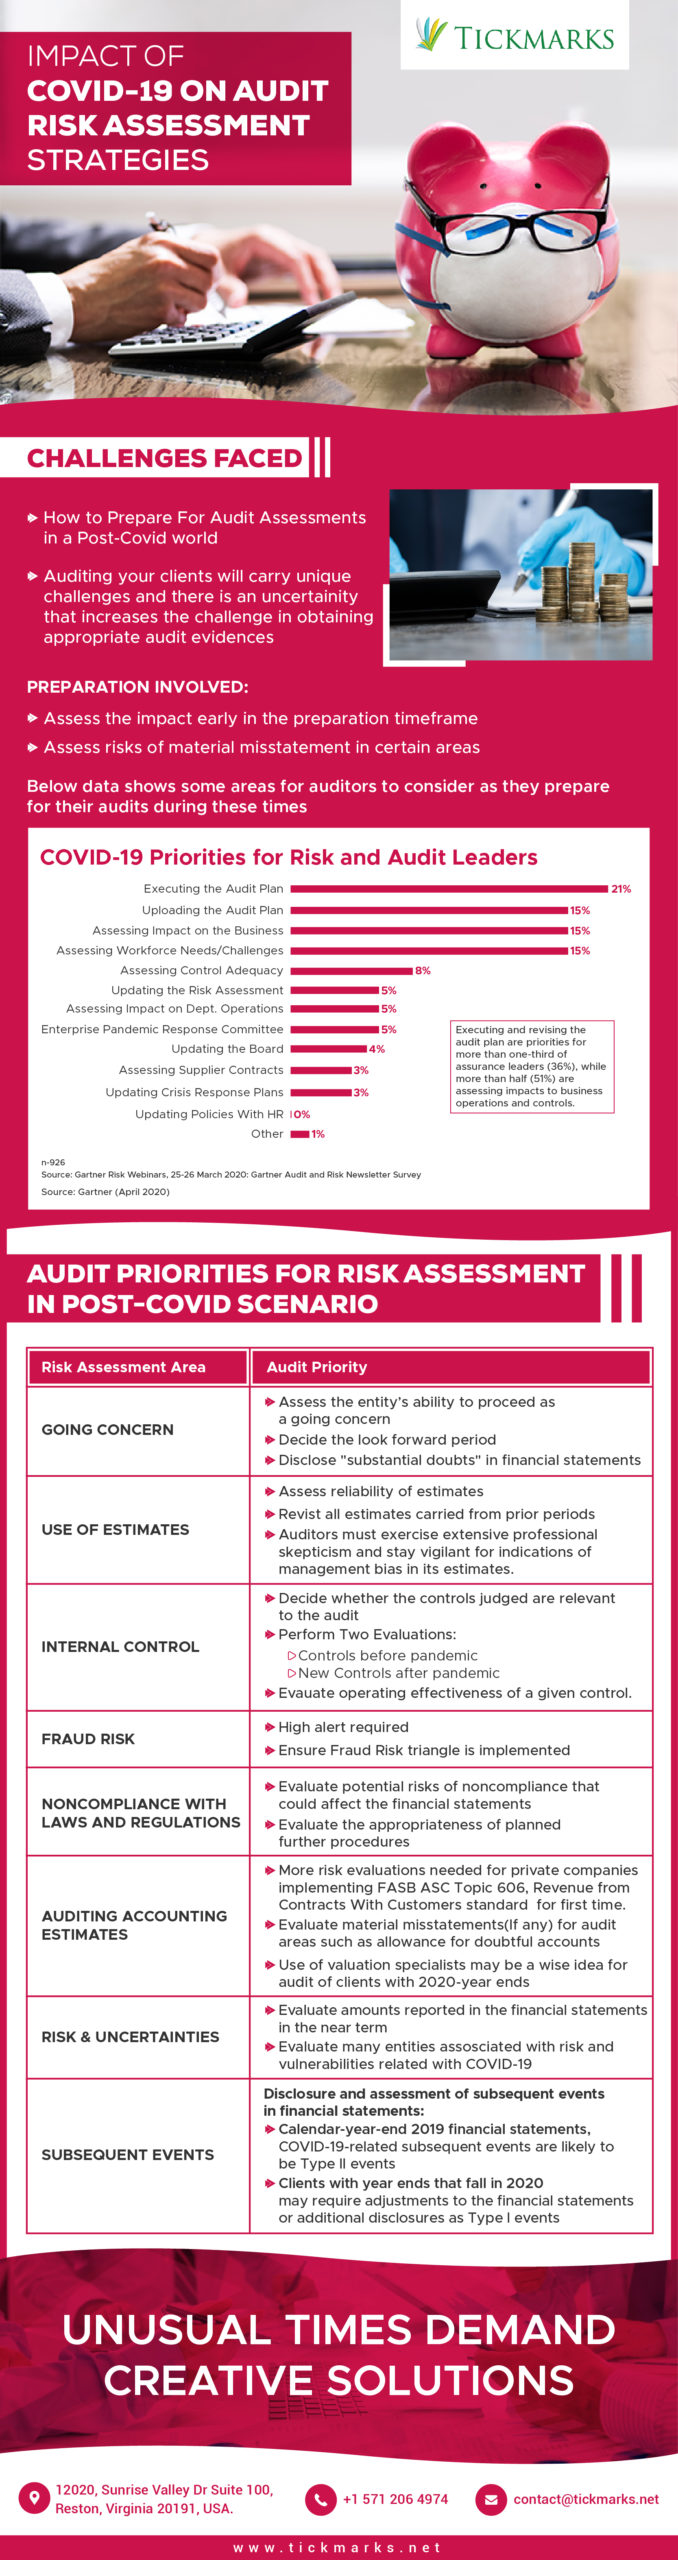 An infographics that explains the impact of COVID-19 on audit risk assessment strategies with virtual bookkeeping solutions provider image and bar chart diagrams.